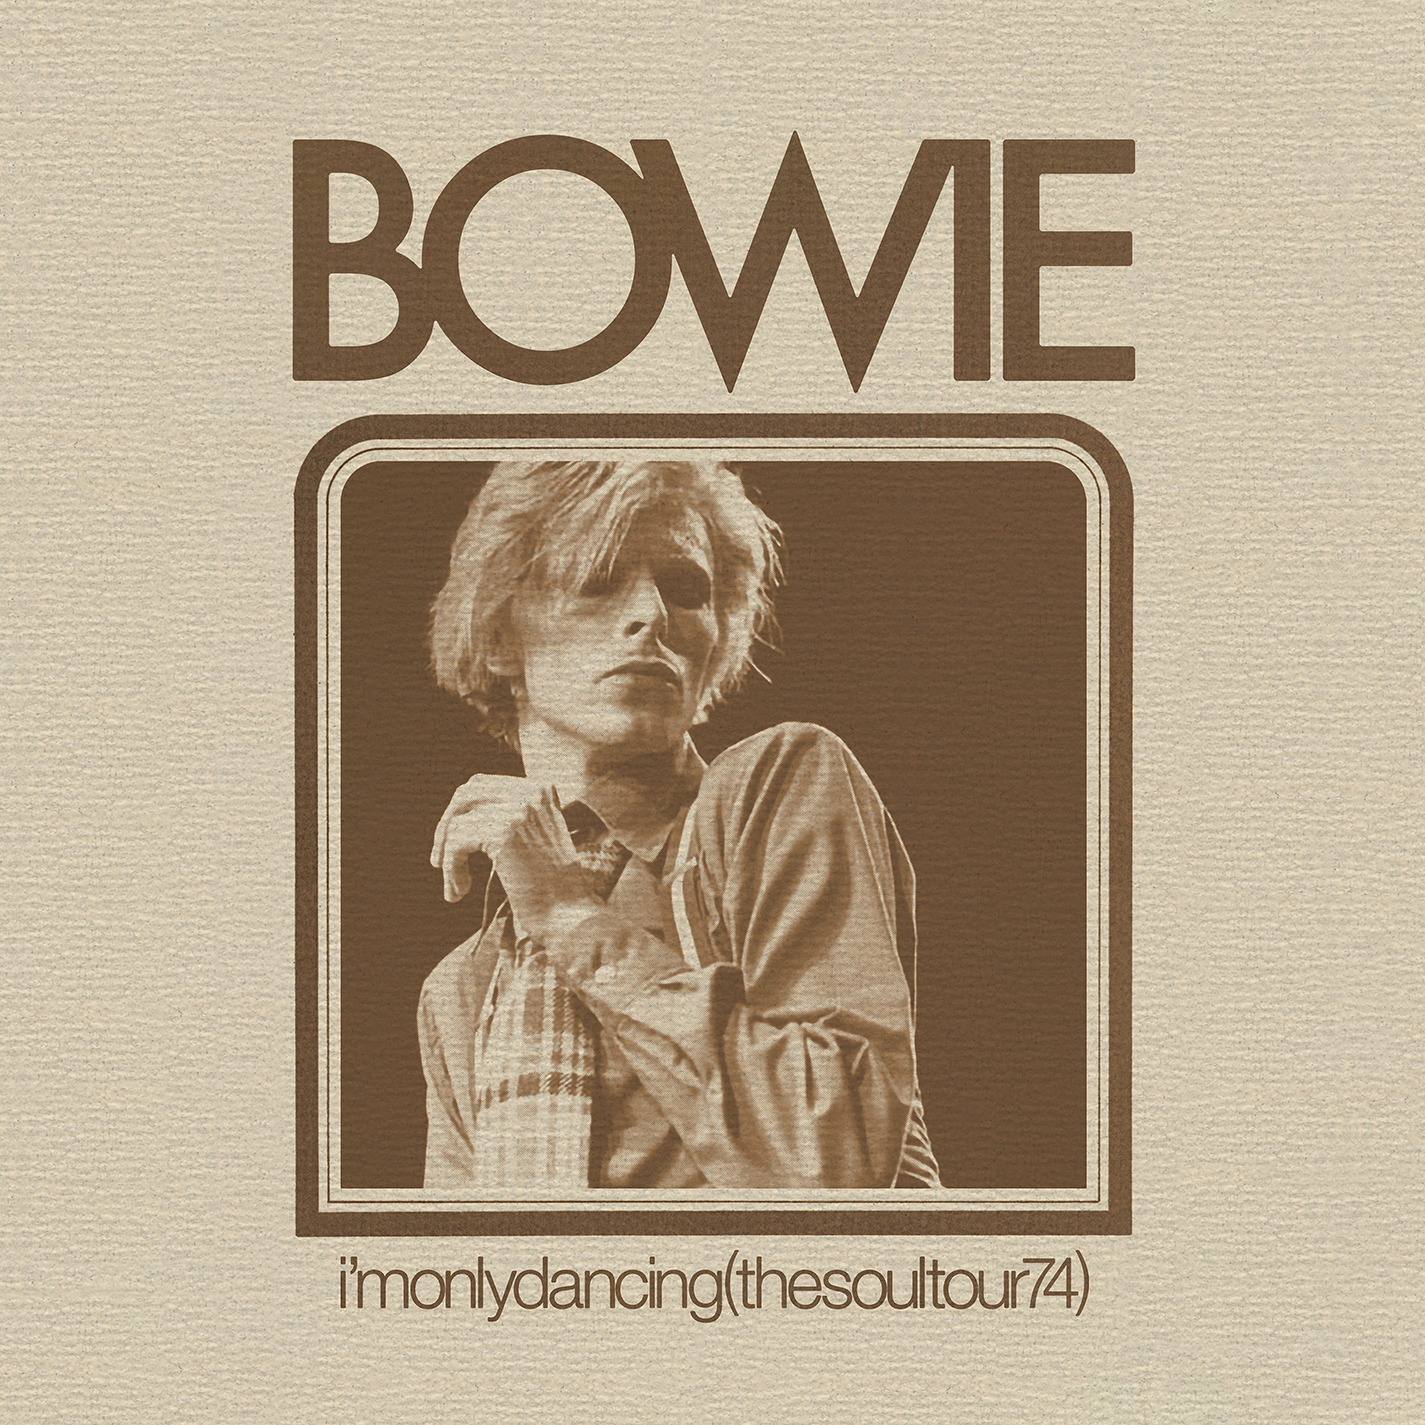 David Bowie - I'm Only Dancing (Soul Tour 74) [RSD Drops Aug 2020]